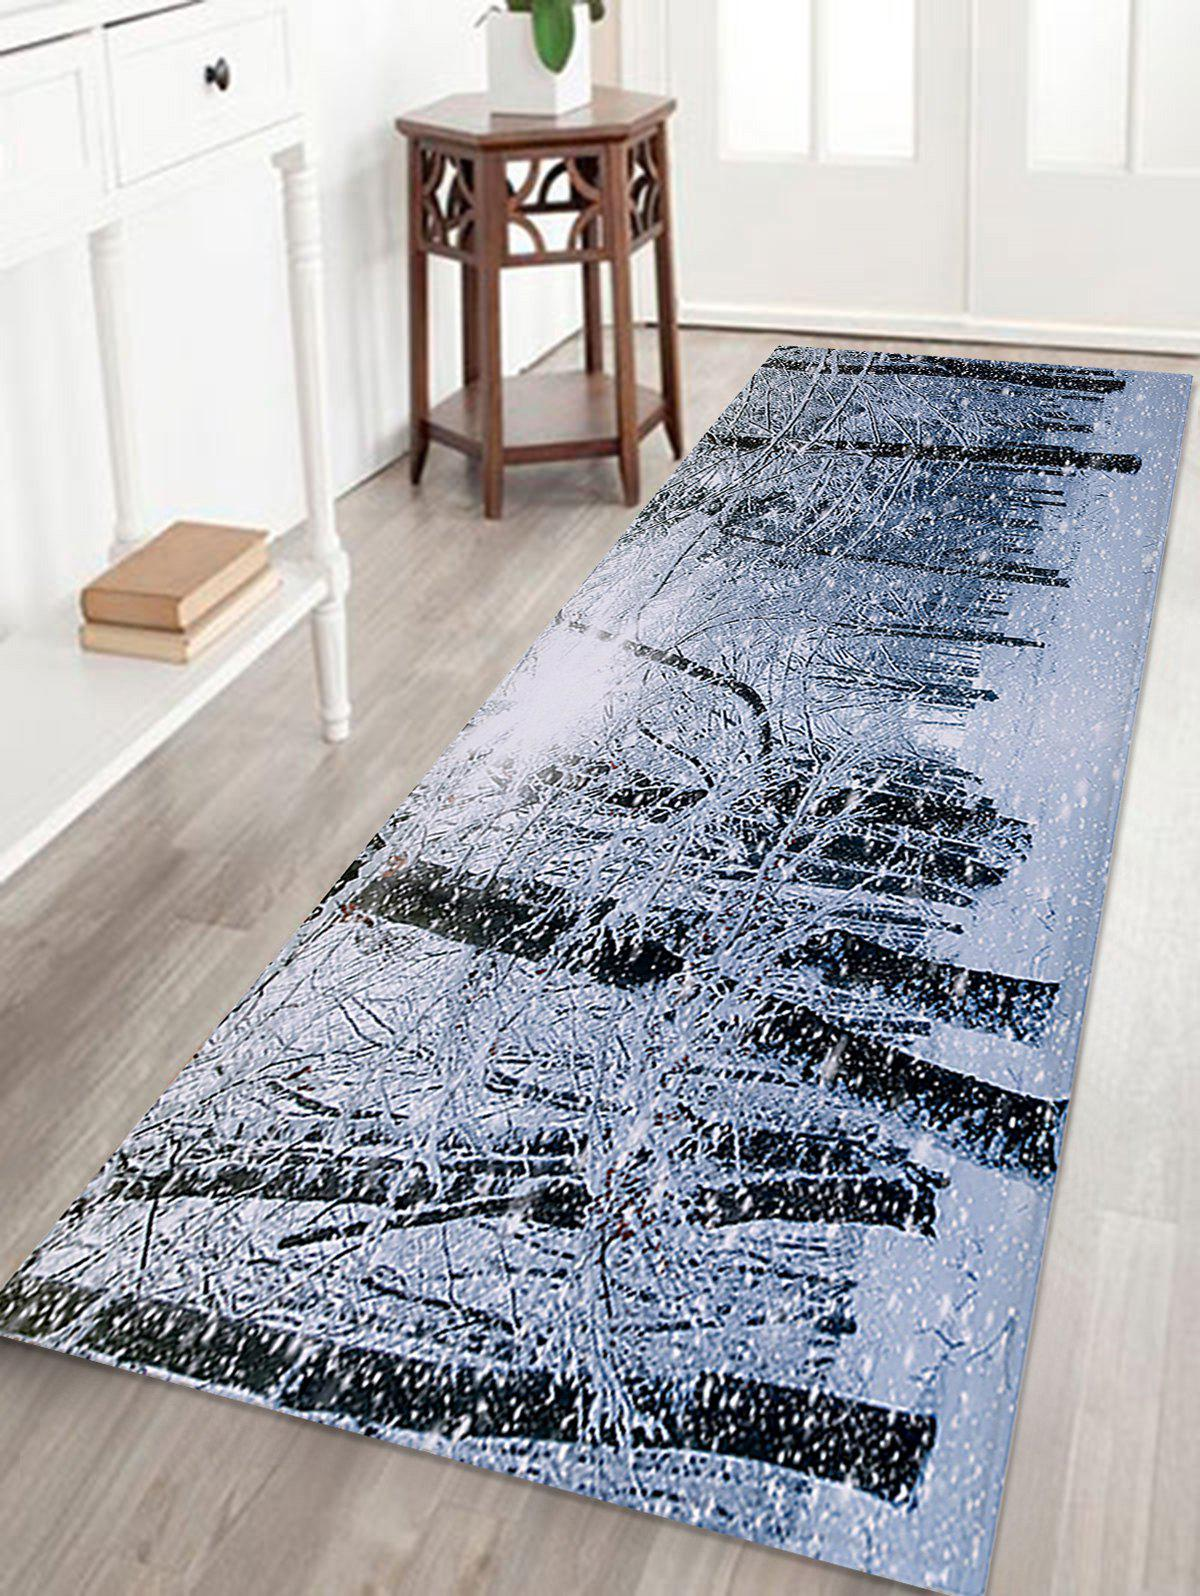 Christmas Snow Forest Printed Skidproof Coral Fleece Bath MatHOME<br><br>Size: W16 INCH * L47 INCH; Color: COLORMIX; Products Type: Bath rugs; Materials: Coral FLeece; Pattern: Forest; Style: Festival; Shape: Rectangular; Package Contents: 1 x Rug;